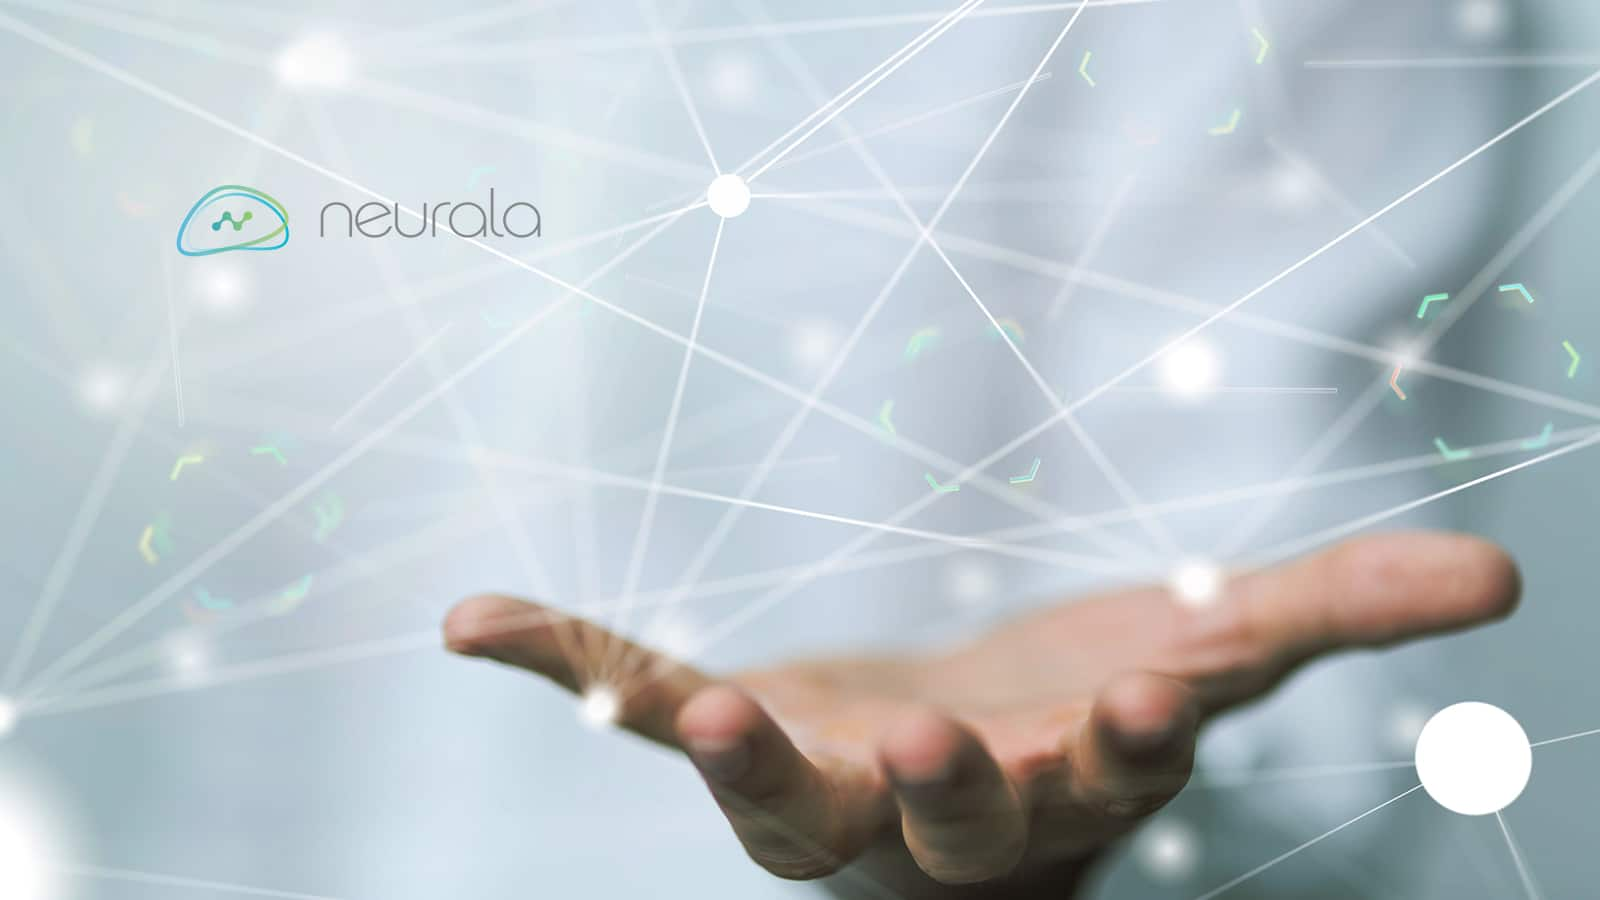 Neurala Launches AI-Assisted Video Annotation Tool in Brain Builder